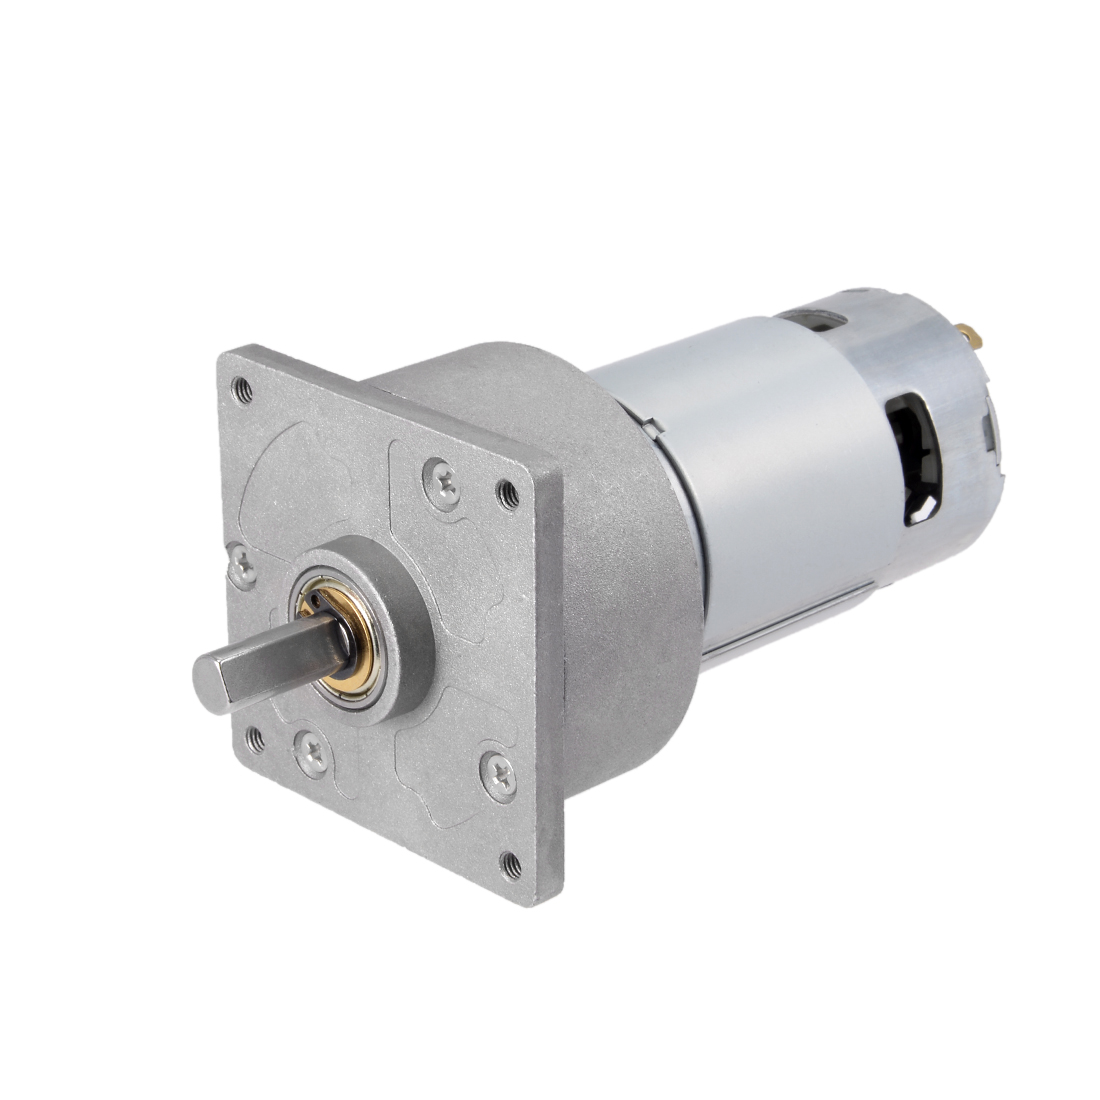 24V DC 150 RPM Gear Motor High Torque Reduction Gearbox Centric Output Shaftc